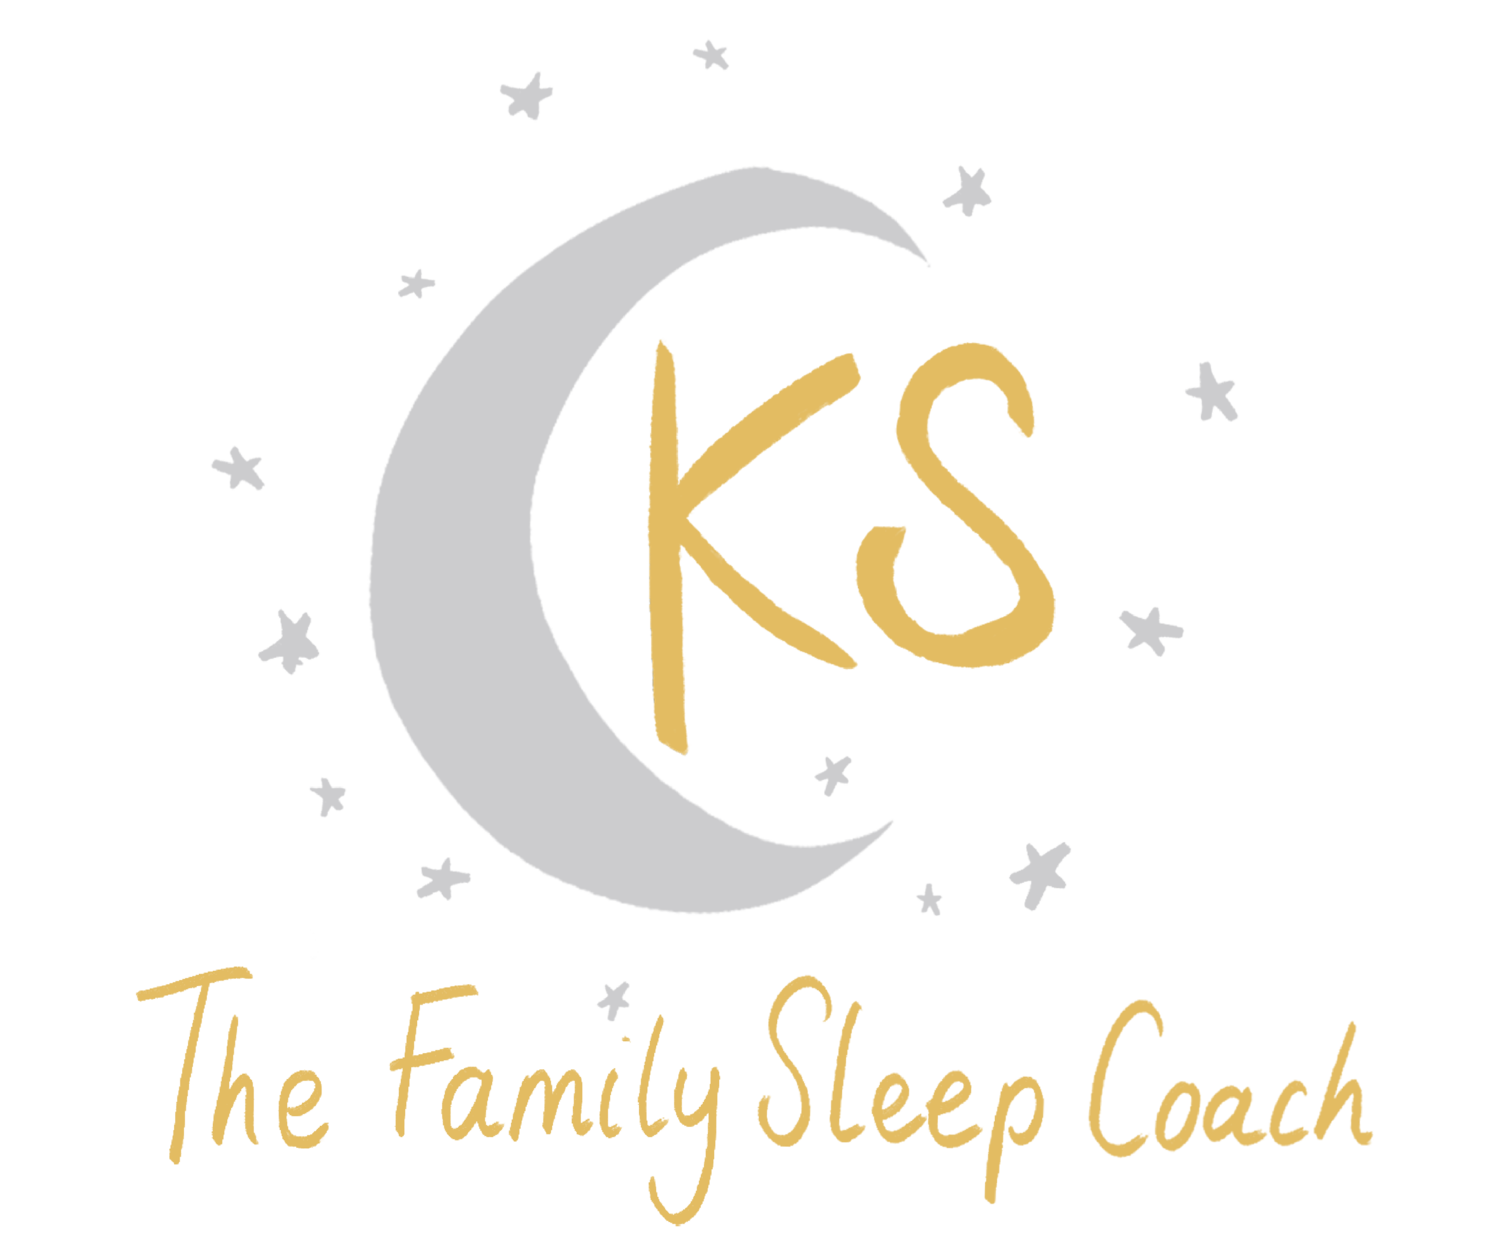 Kathryn Stimpson - The Family Sleep Coach